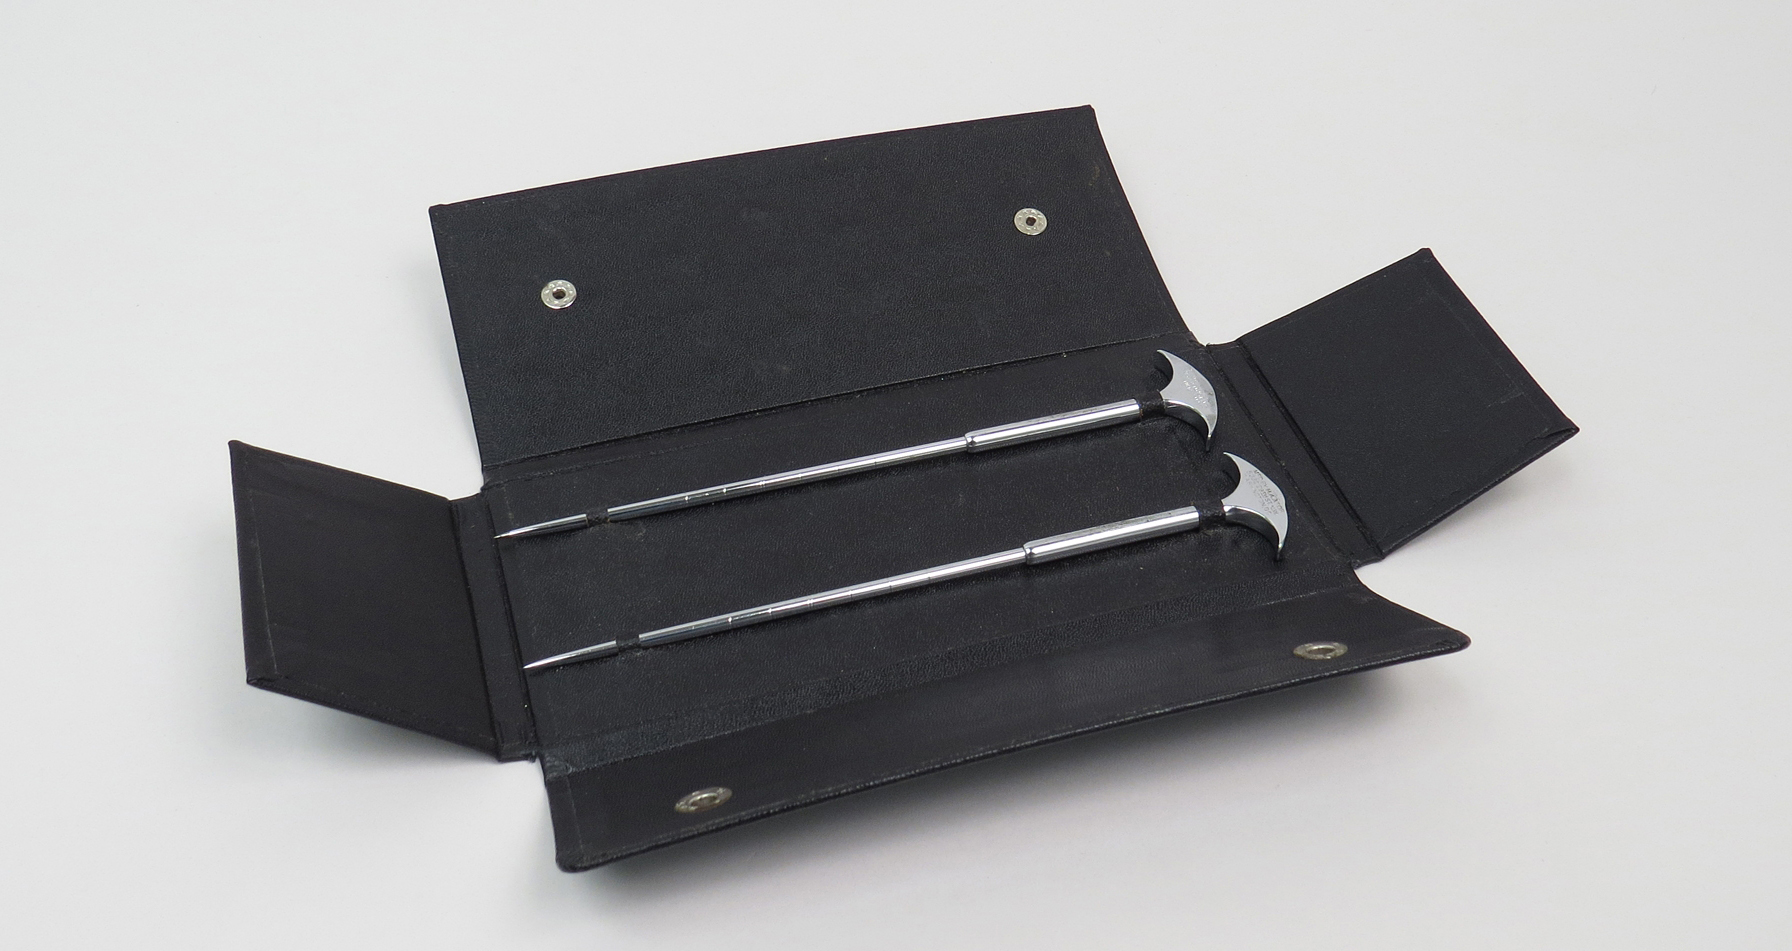 In a black storage case with silver buttons, two silvery metal knives with pointed ends. The non-pointed ends are arch-shaped.